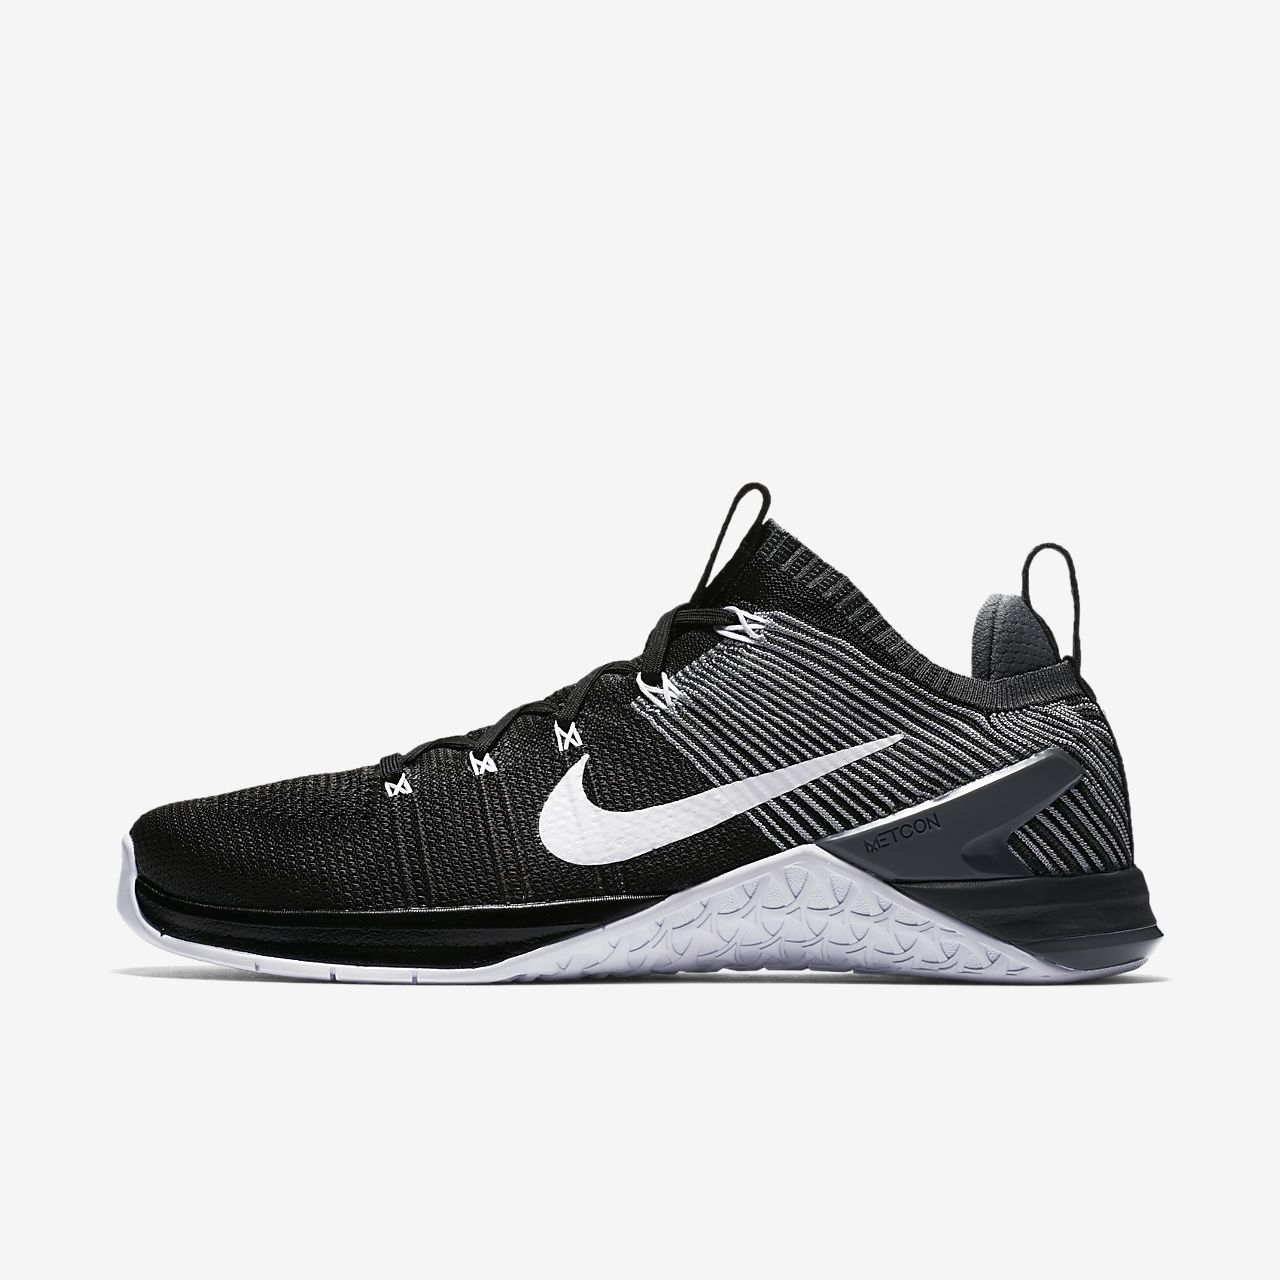 nike shoes drop dates umkc blackboard student 942949